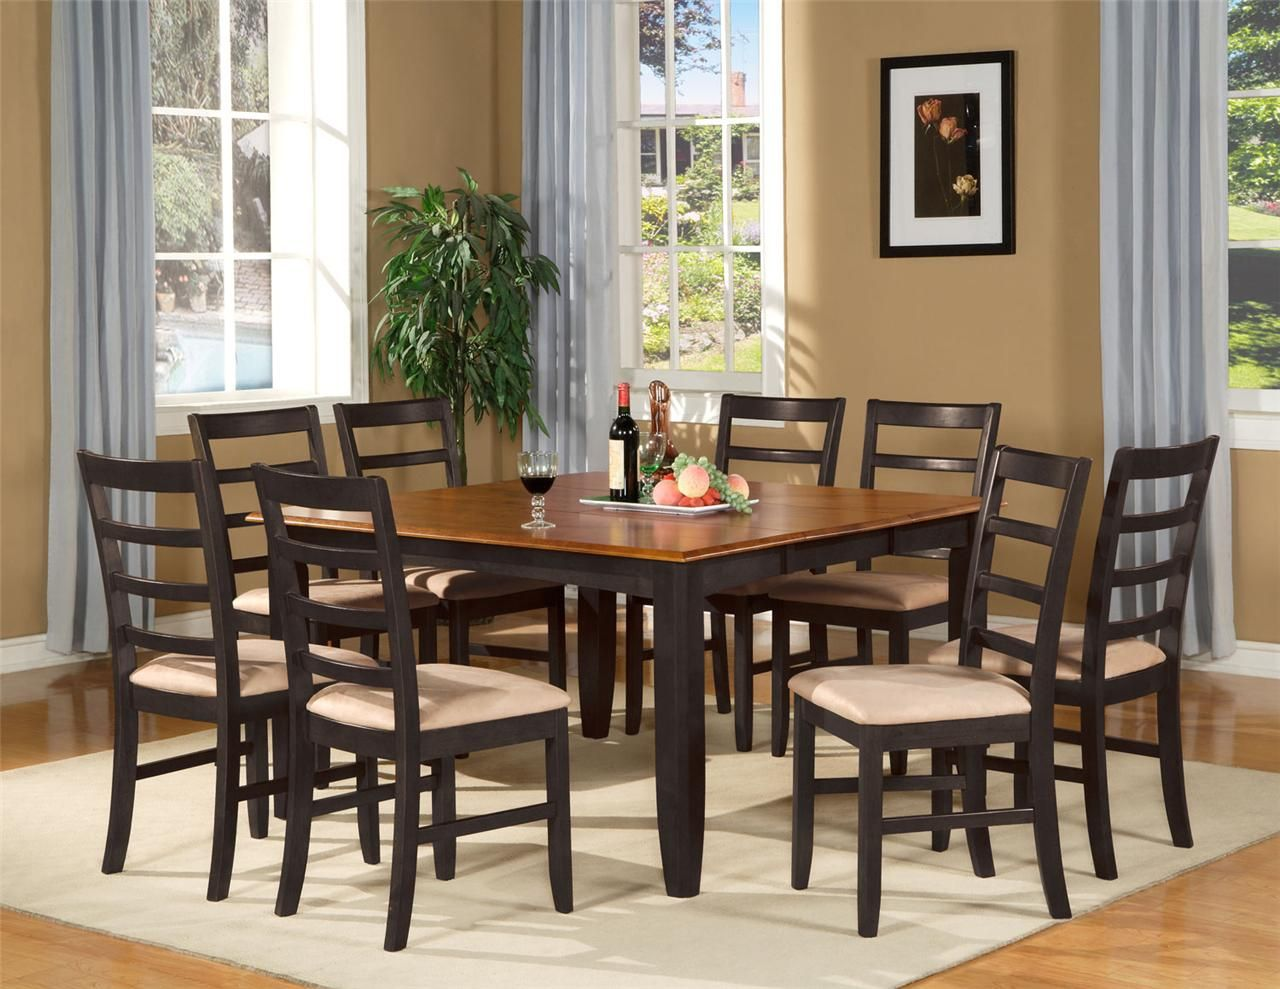 9 Pc Square Dinette Dining Room Table Set And 8 Chairs  Dining Amazing 8 Pc Dining Room Set 2018